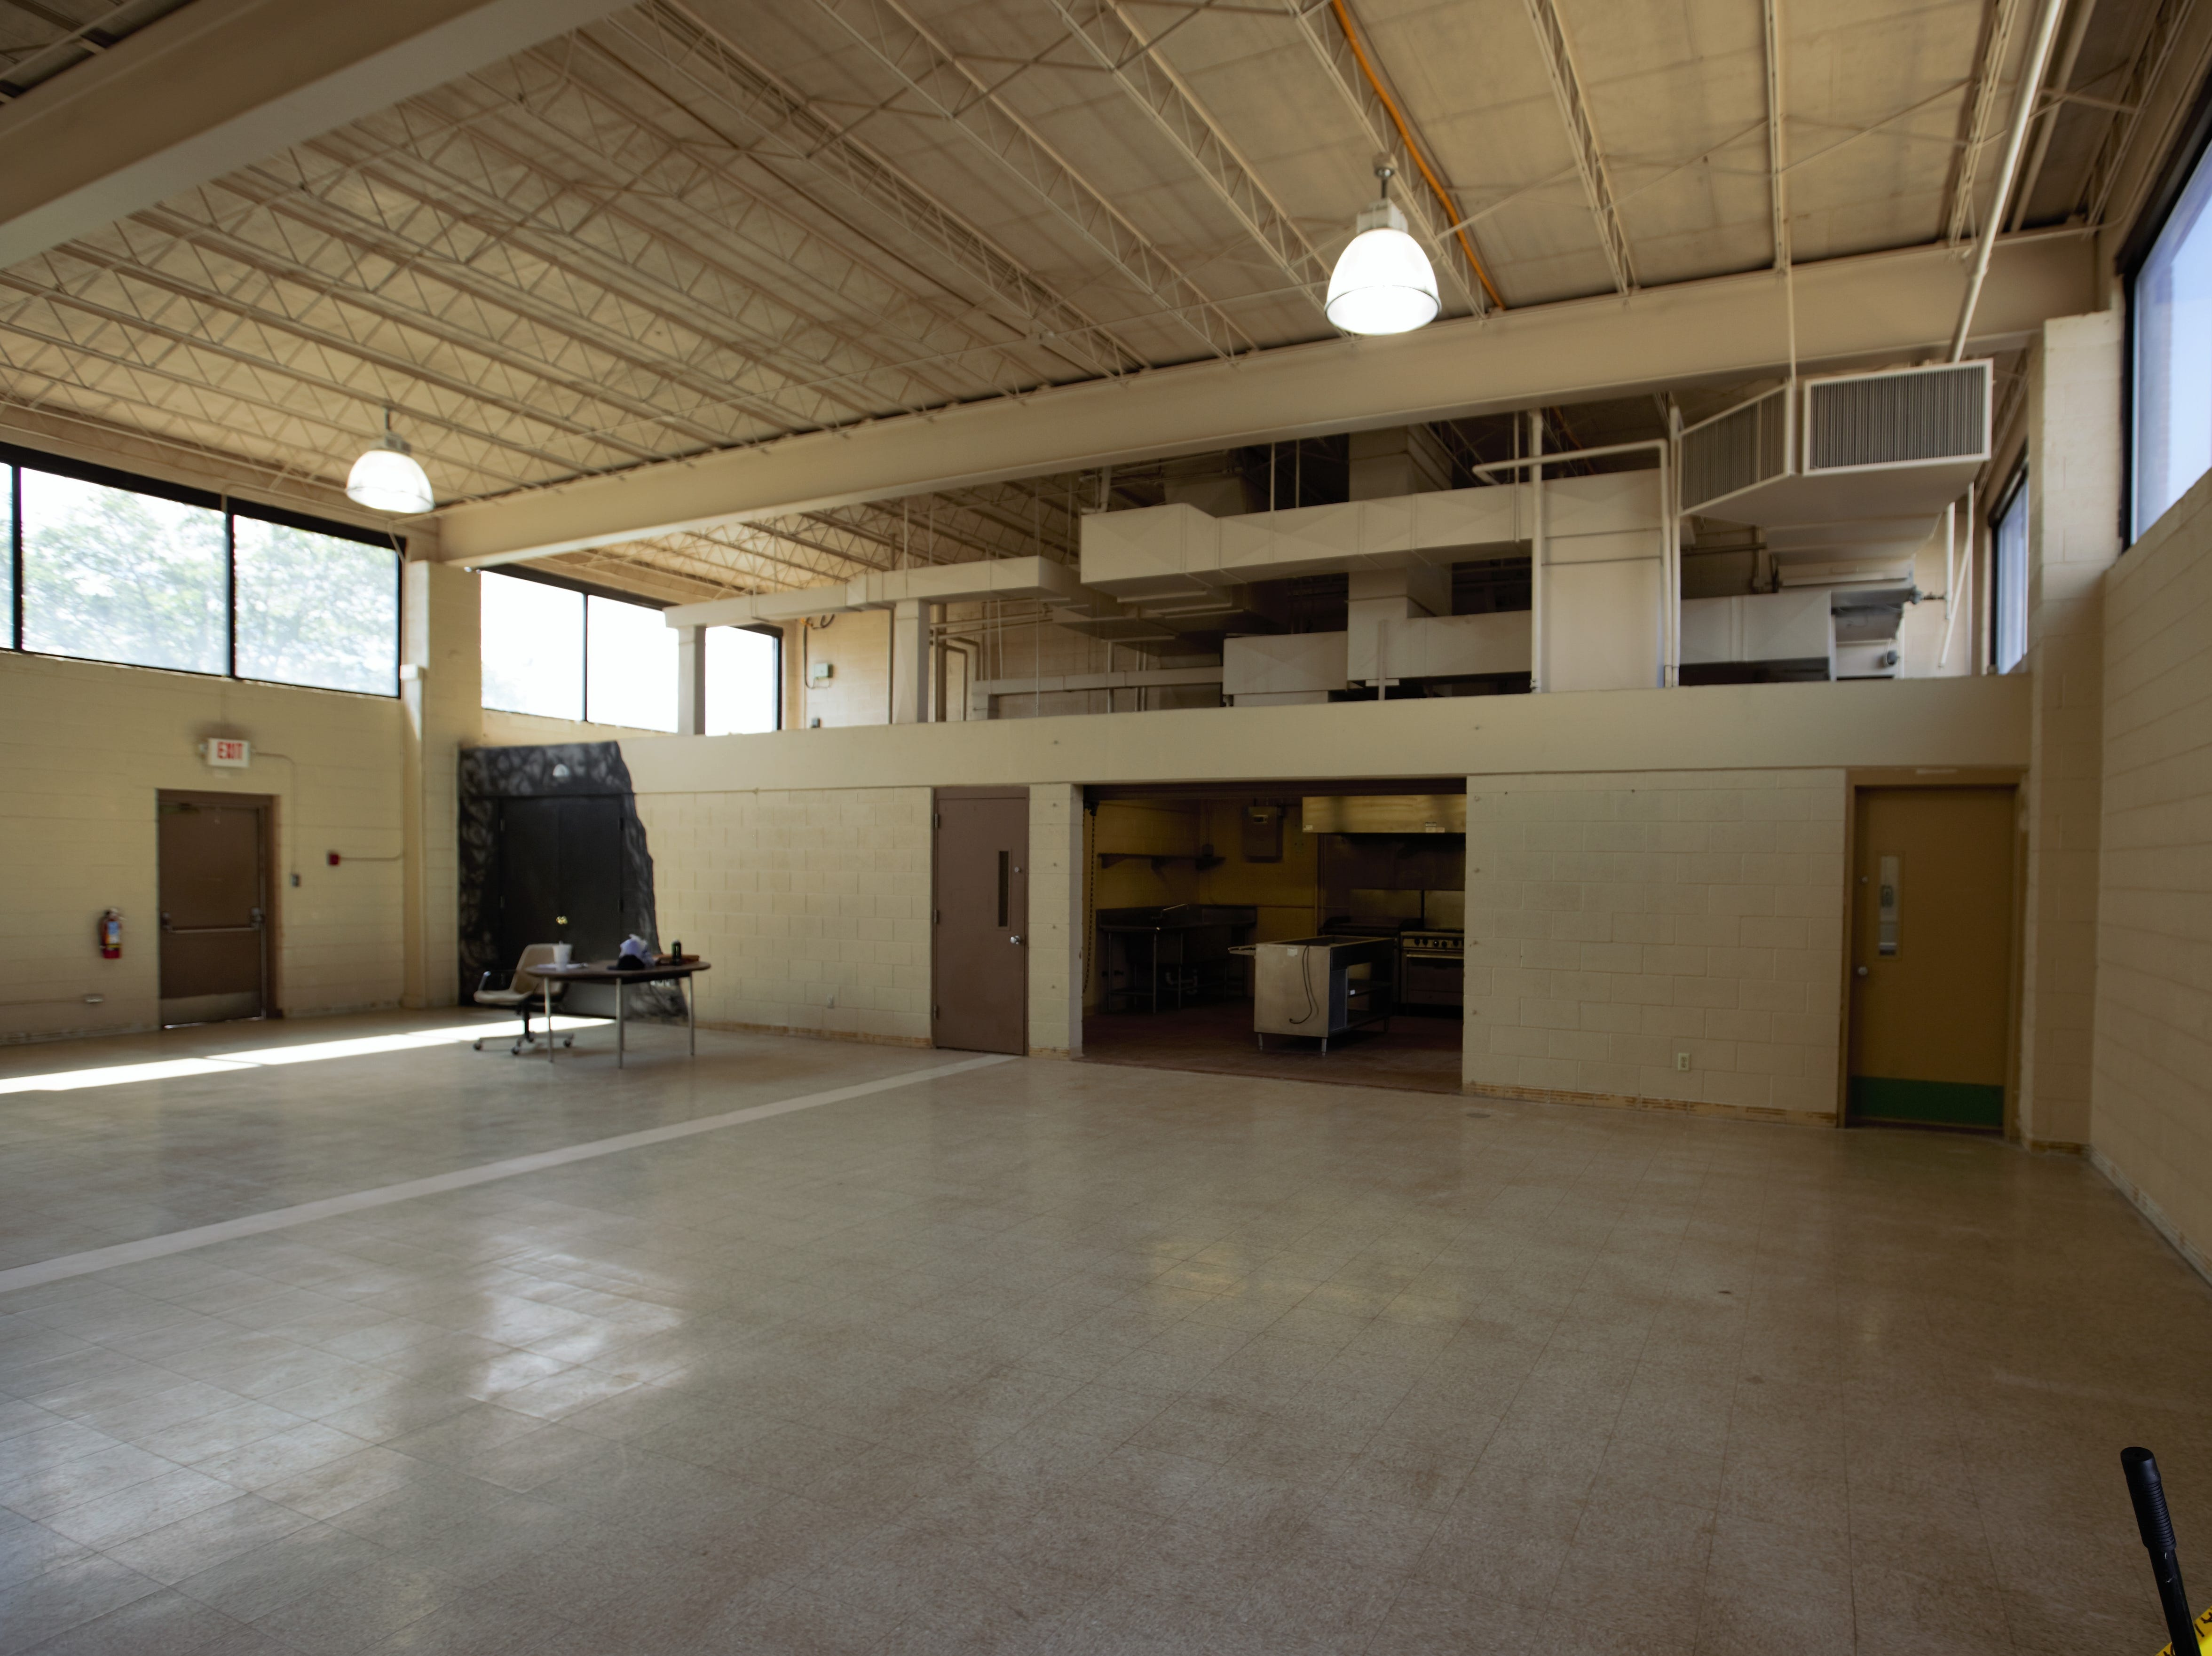 Dining area with adjacent kitchen to provide meals for asylum applicants at the former U.S. Army Reserve Center at 1300 W. Brown Road in Las Cruces. Friday, April 26, 2019.